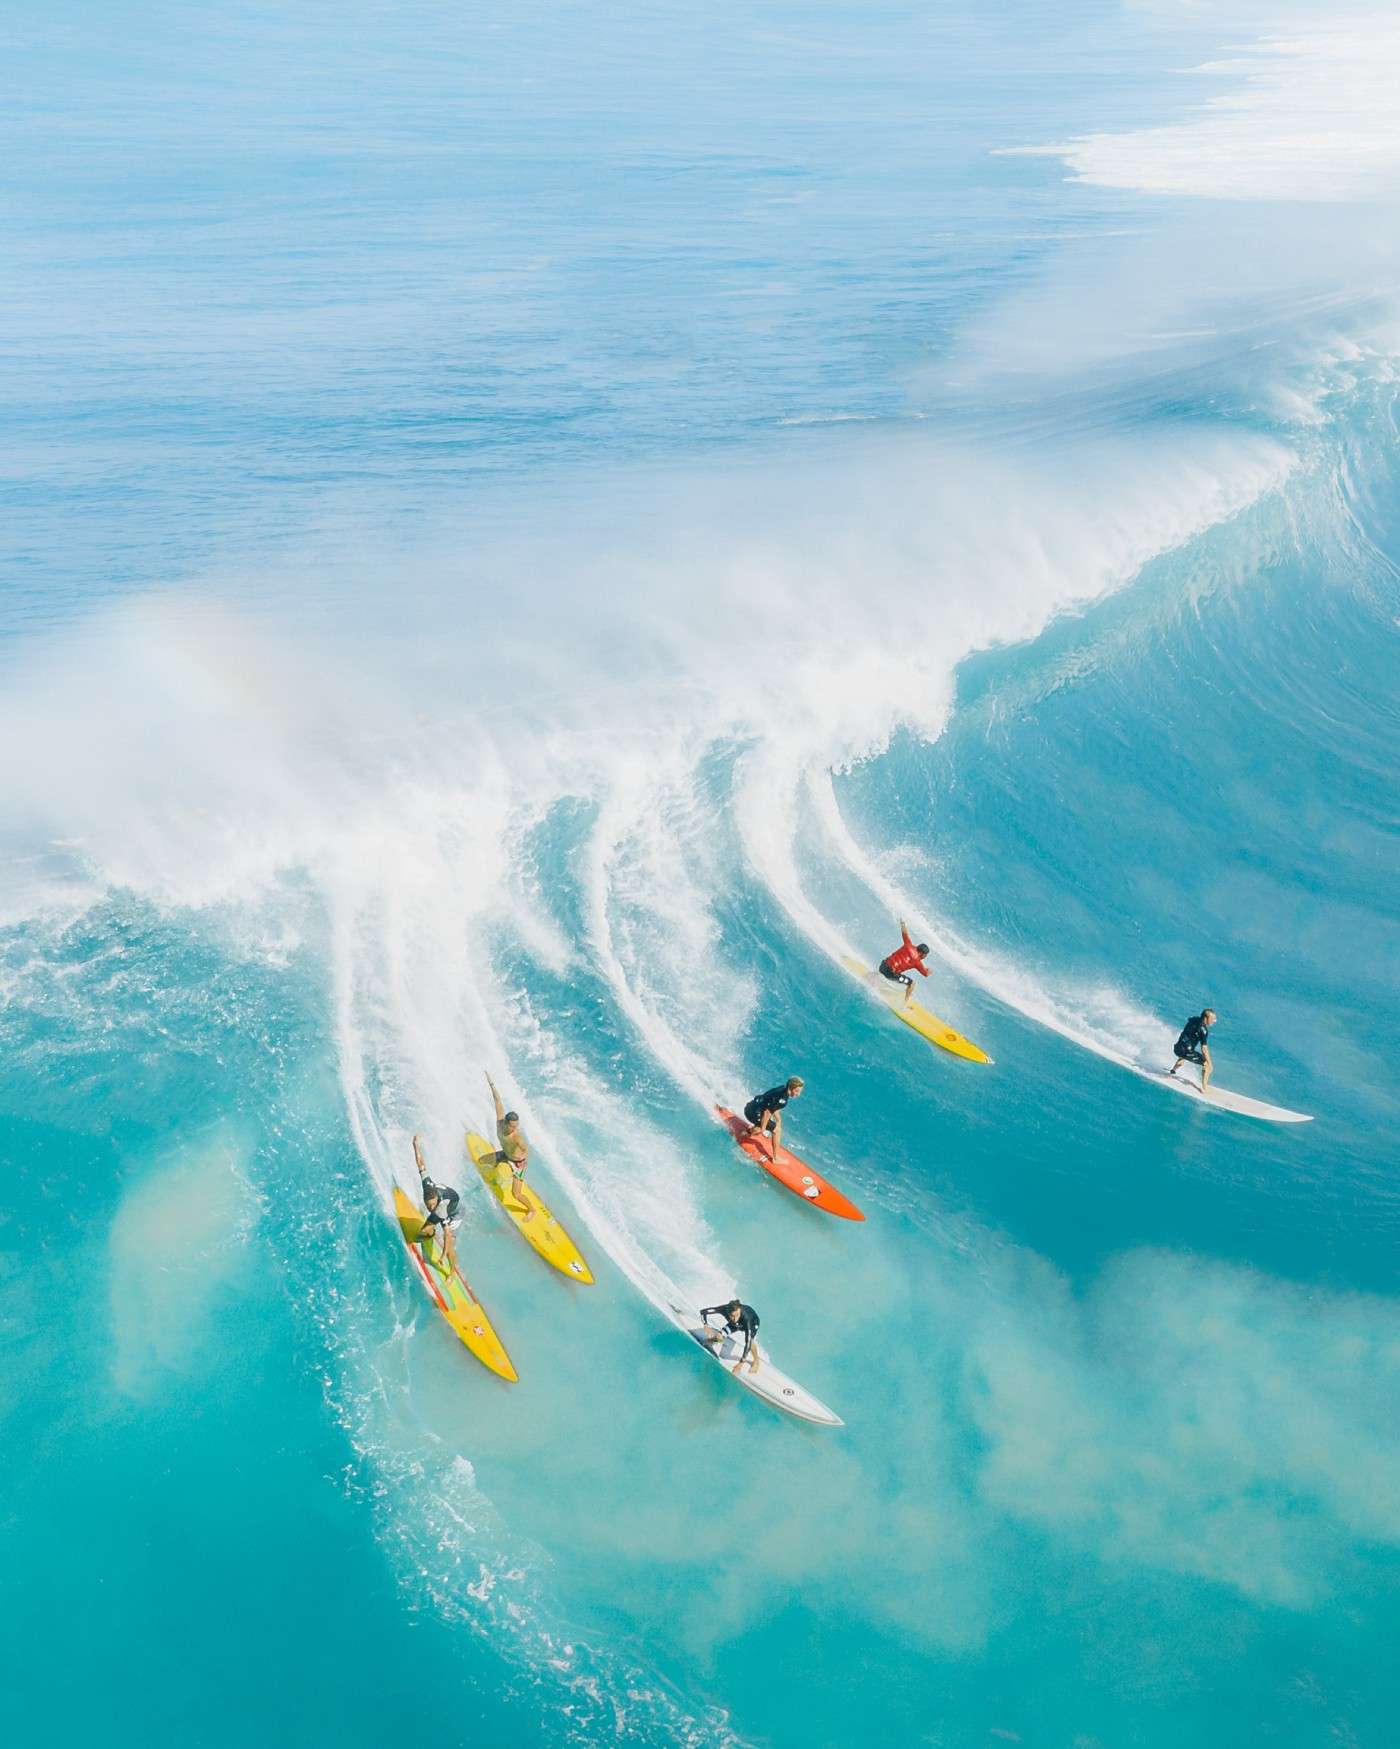 Five benefits of reading other people's work, as represented by six surfers on a big wave